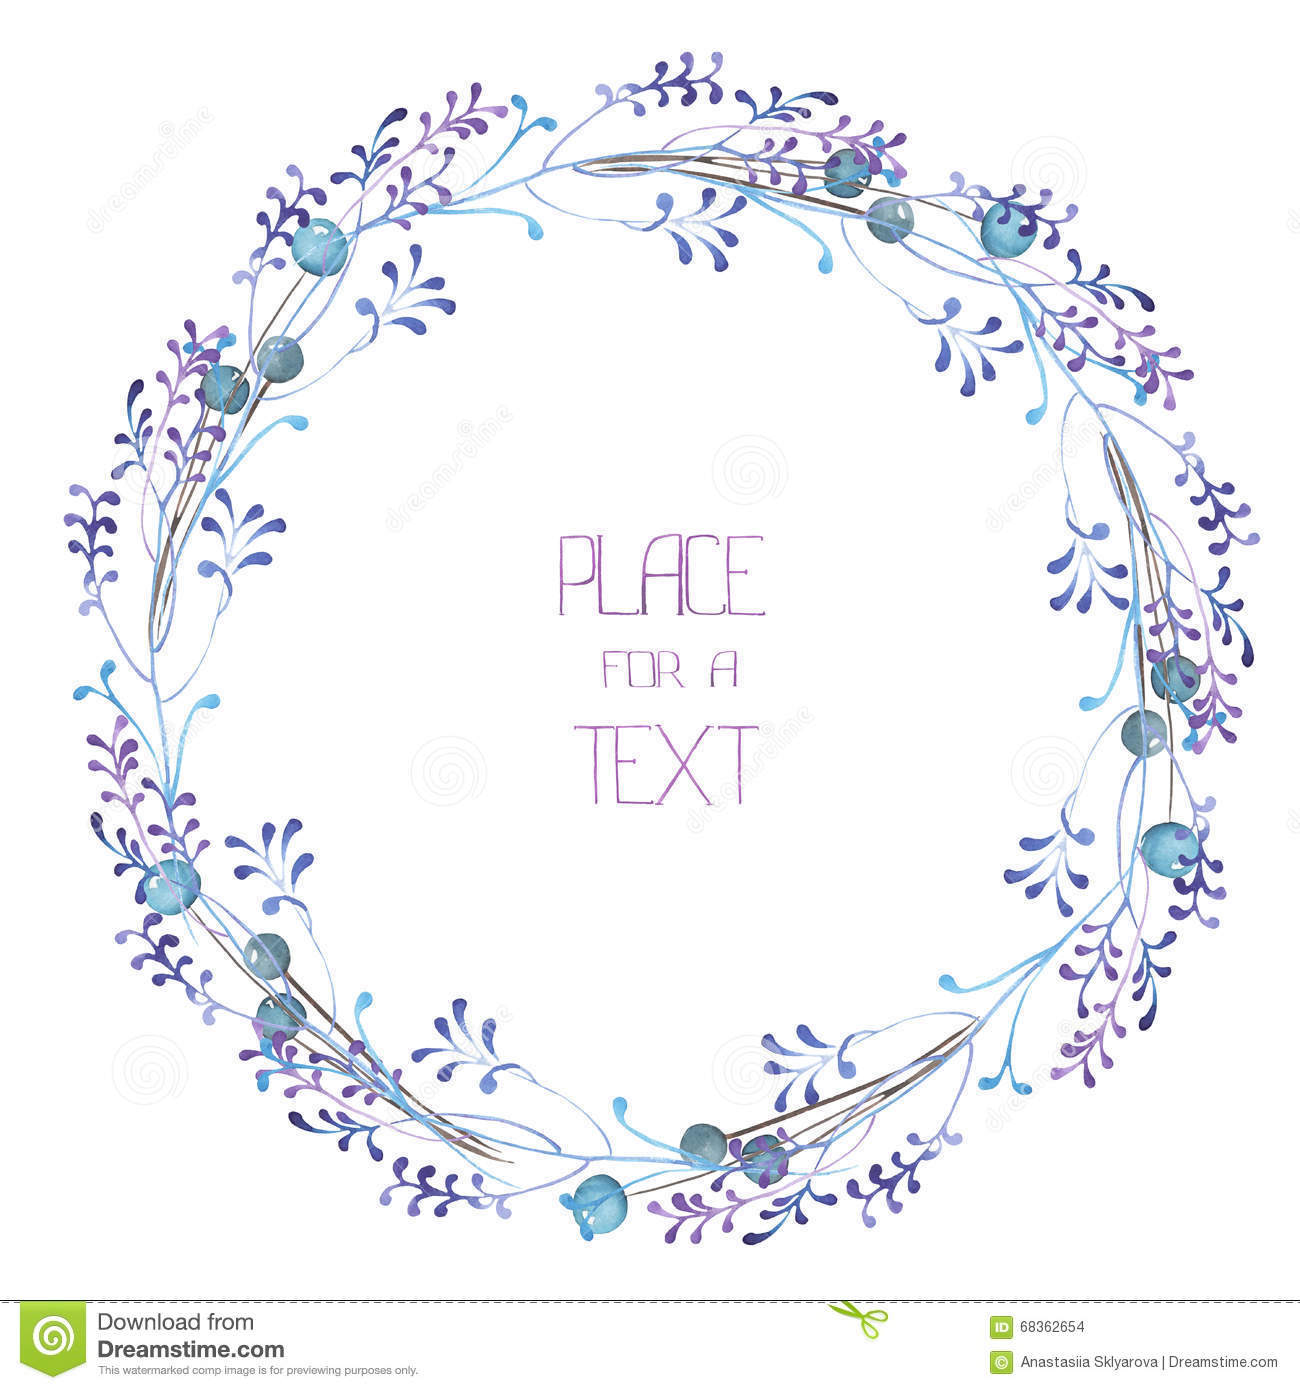 A Circle Frame Wreath Frame Border With The Watercolor Blue Berries And Violet Branches